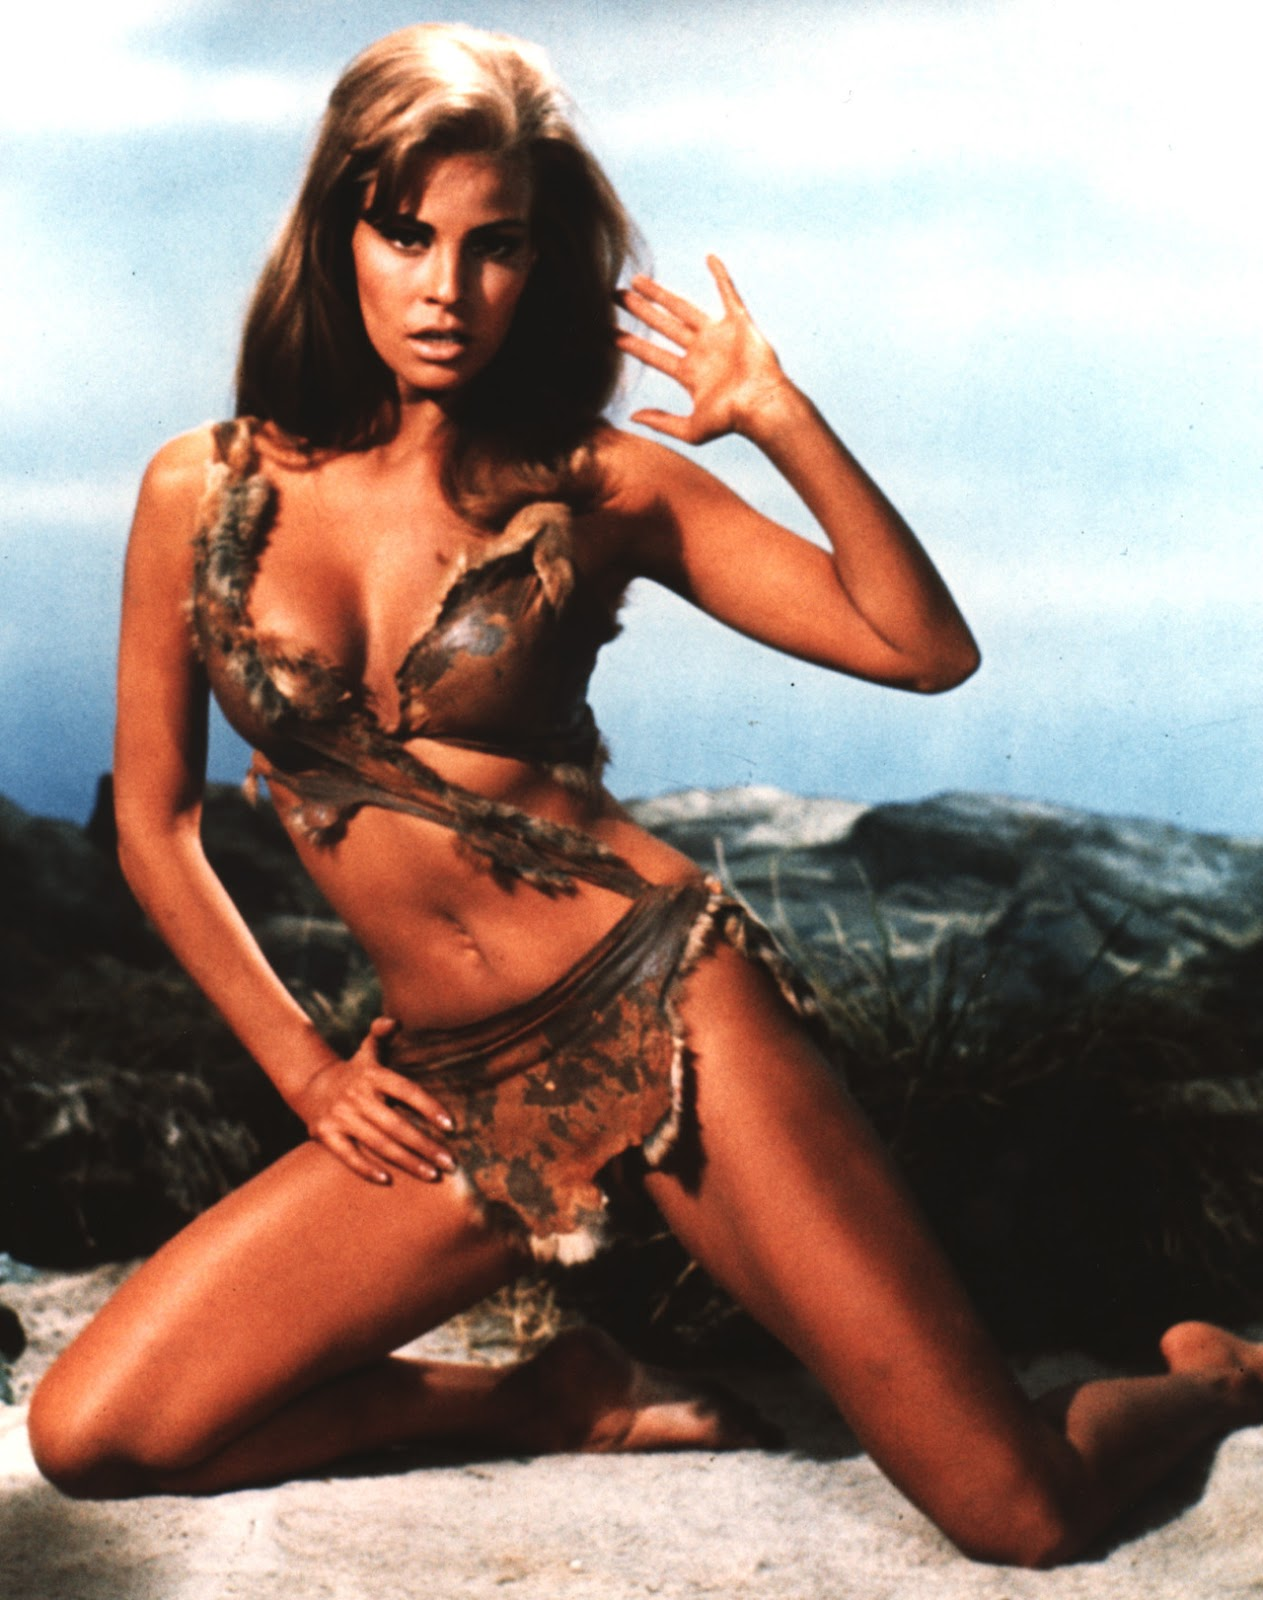 Slice of Cheesecake: Raquel Welch, cave girl